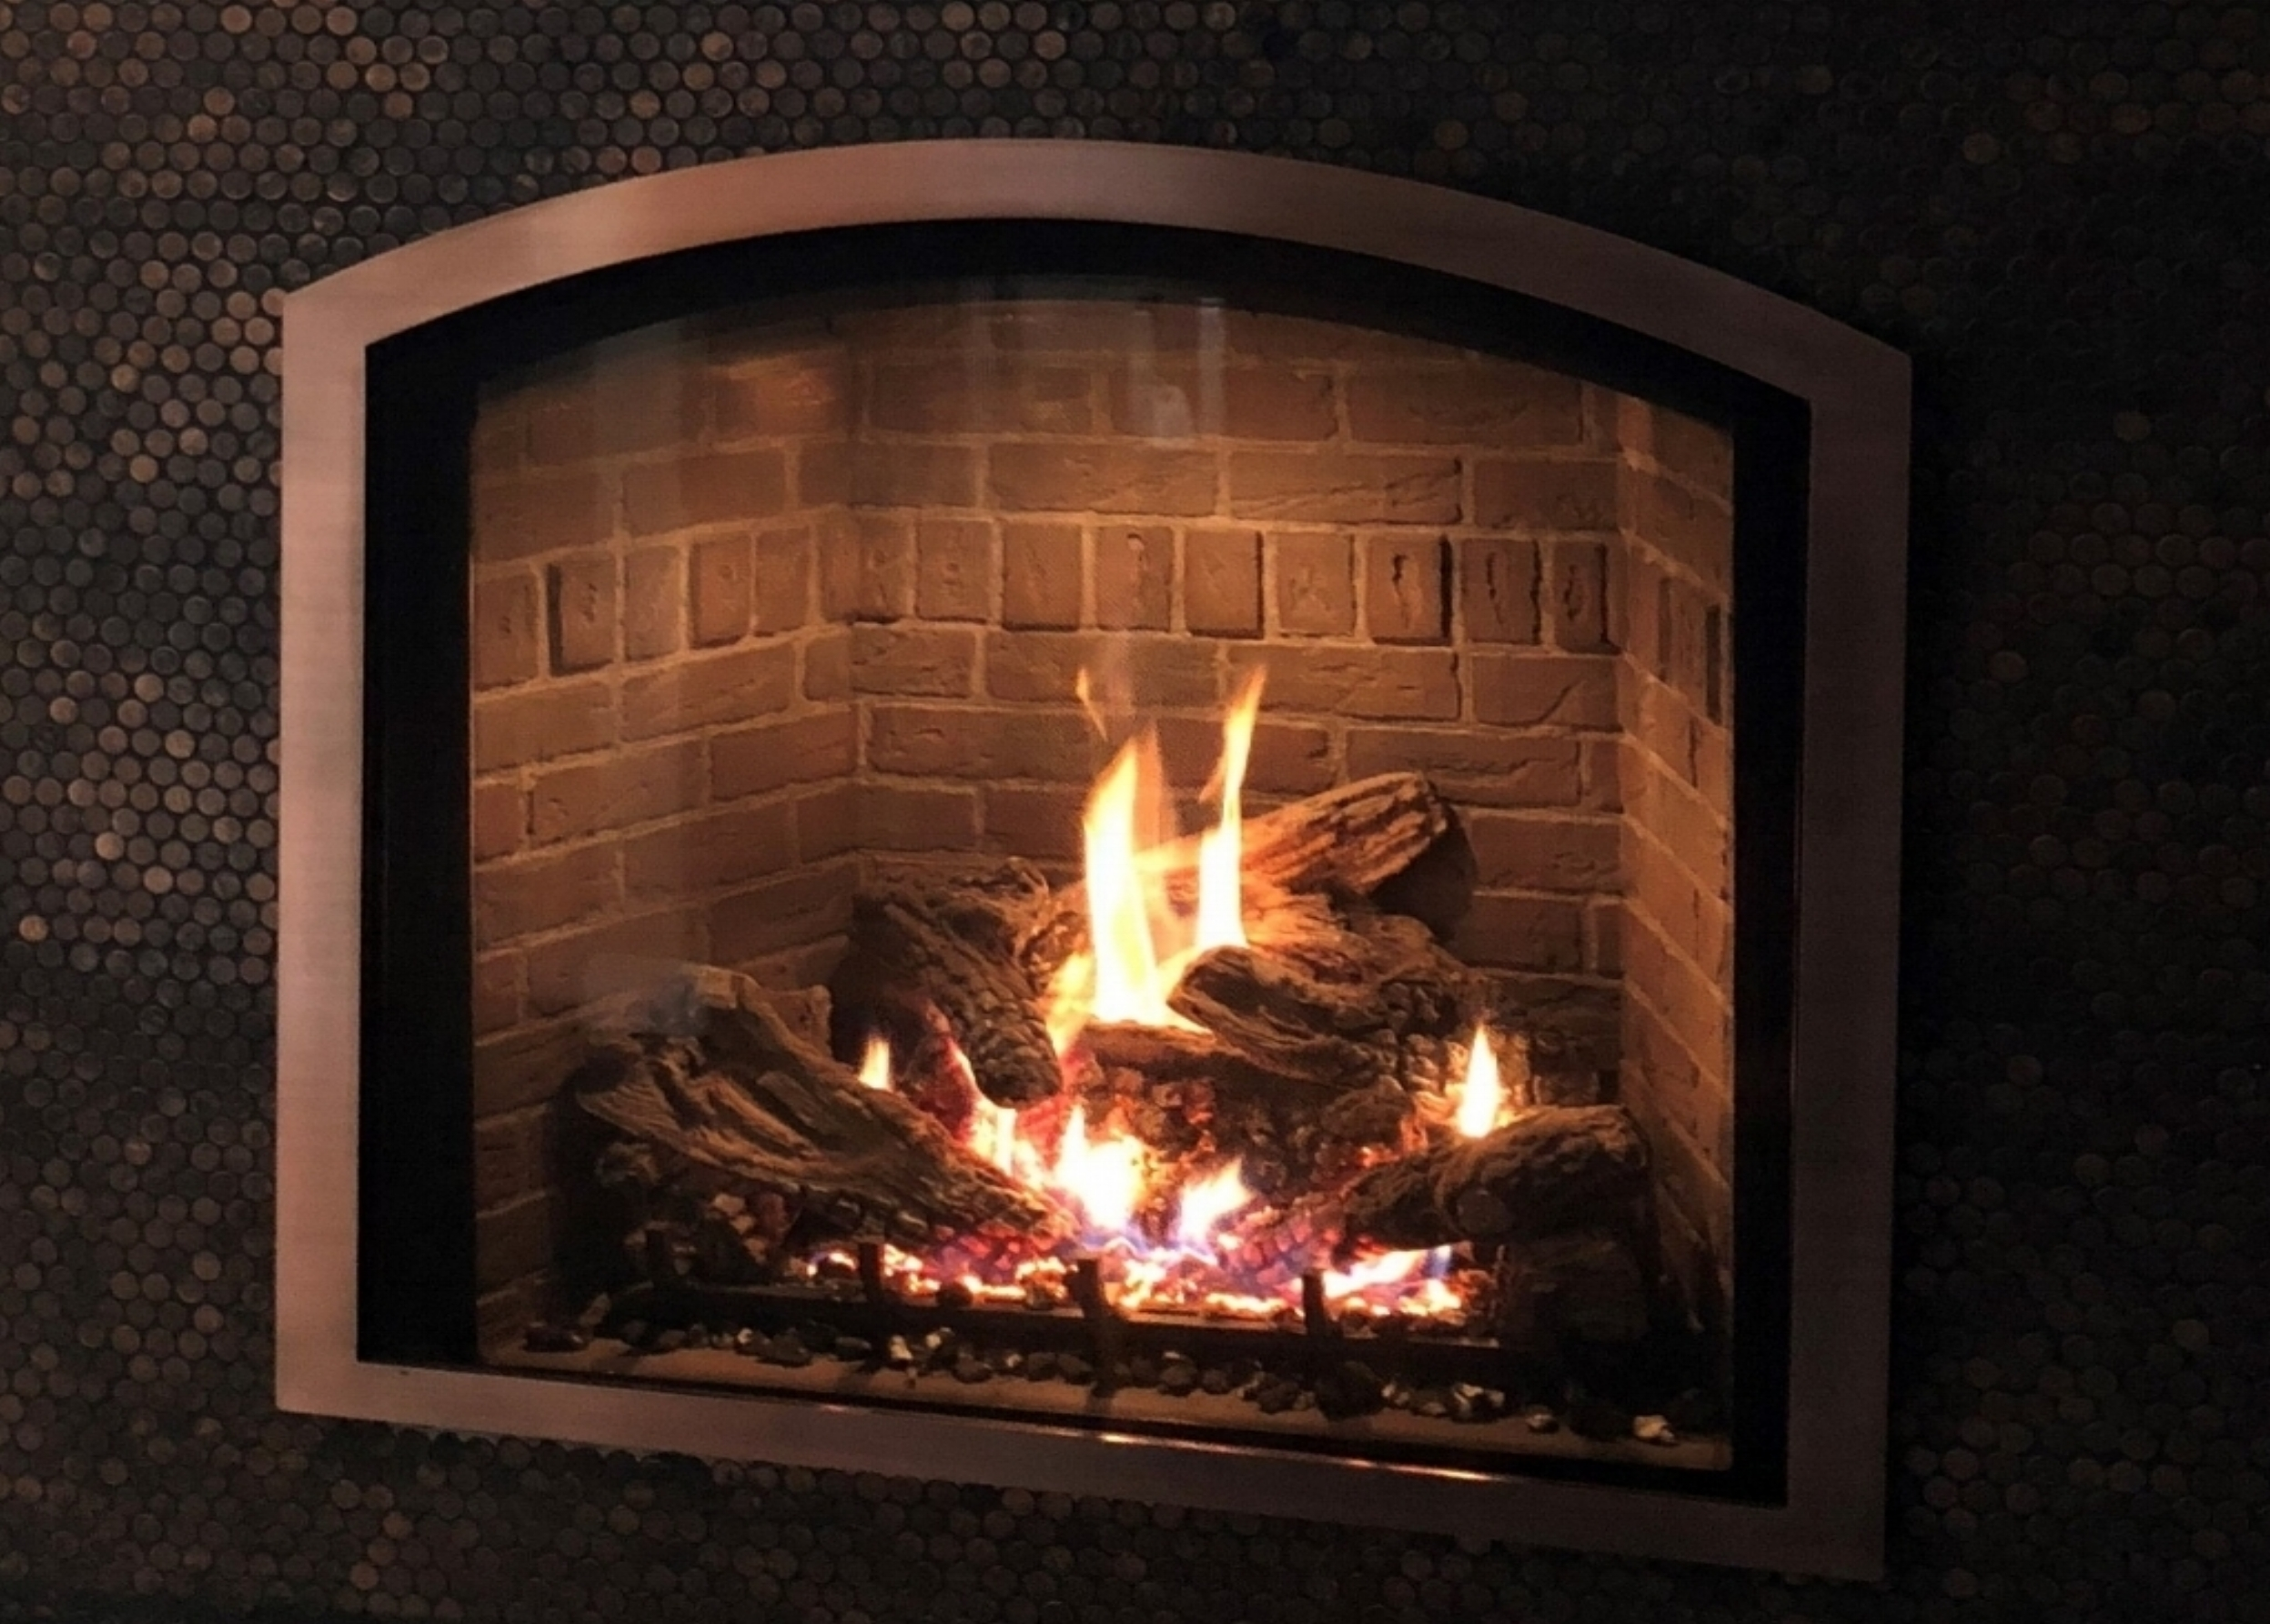 Mendota Fullview 41 Arch Gas Fireplace - True arch fireplace, copper screen front, and 86% efficiency. Save $1,037